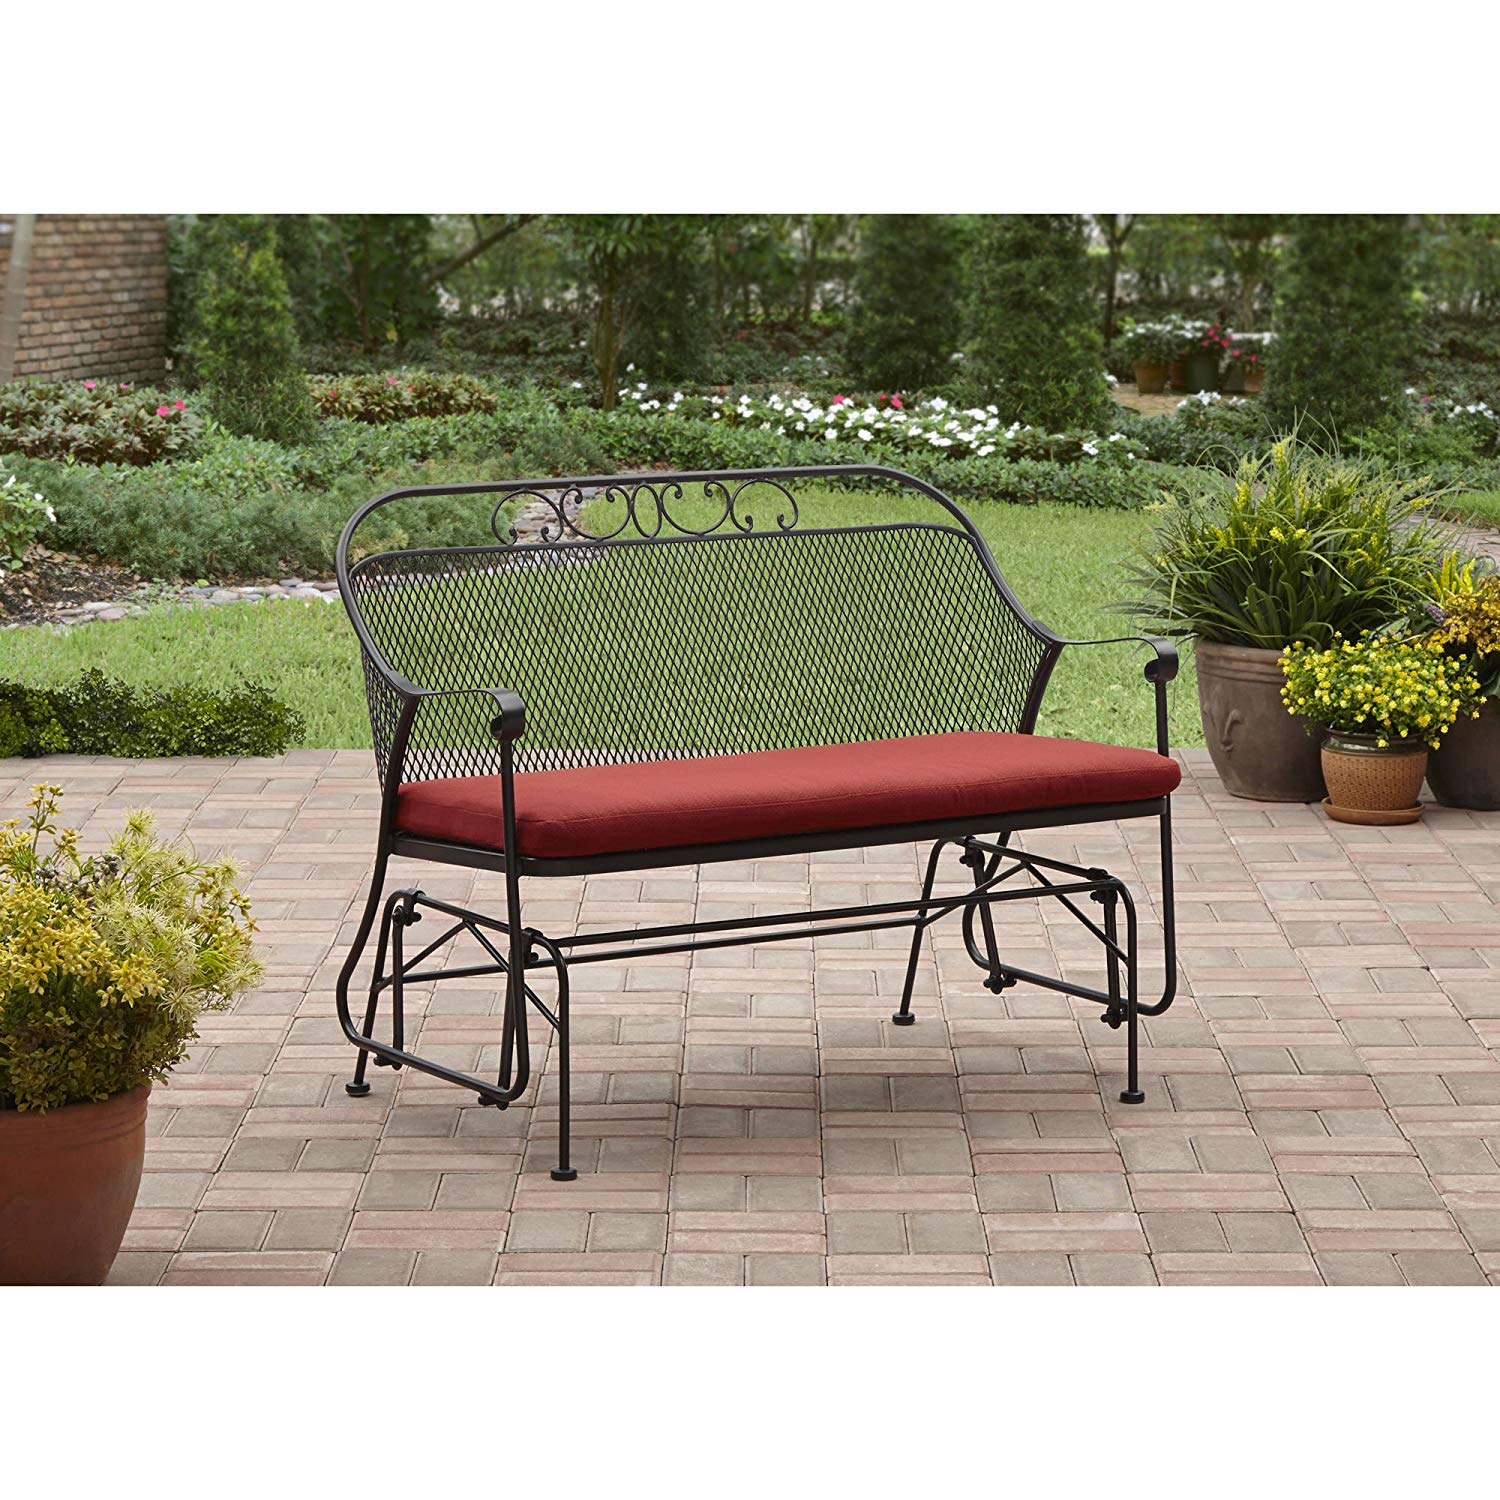 Cheap Outdoor Cushion Fabric Water Resistant, Find Outdoor Throughout Glider Benches With Cushion (Image 6 of 25)